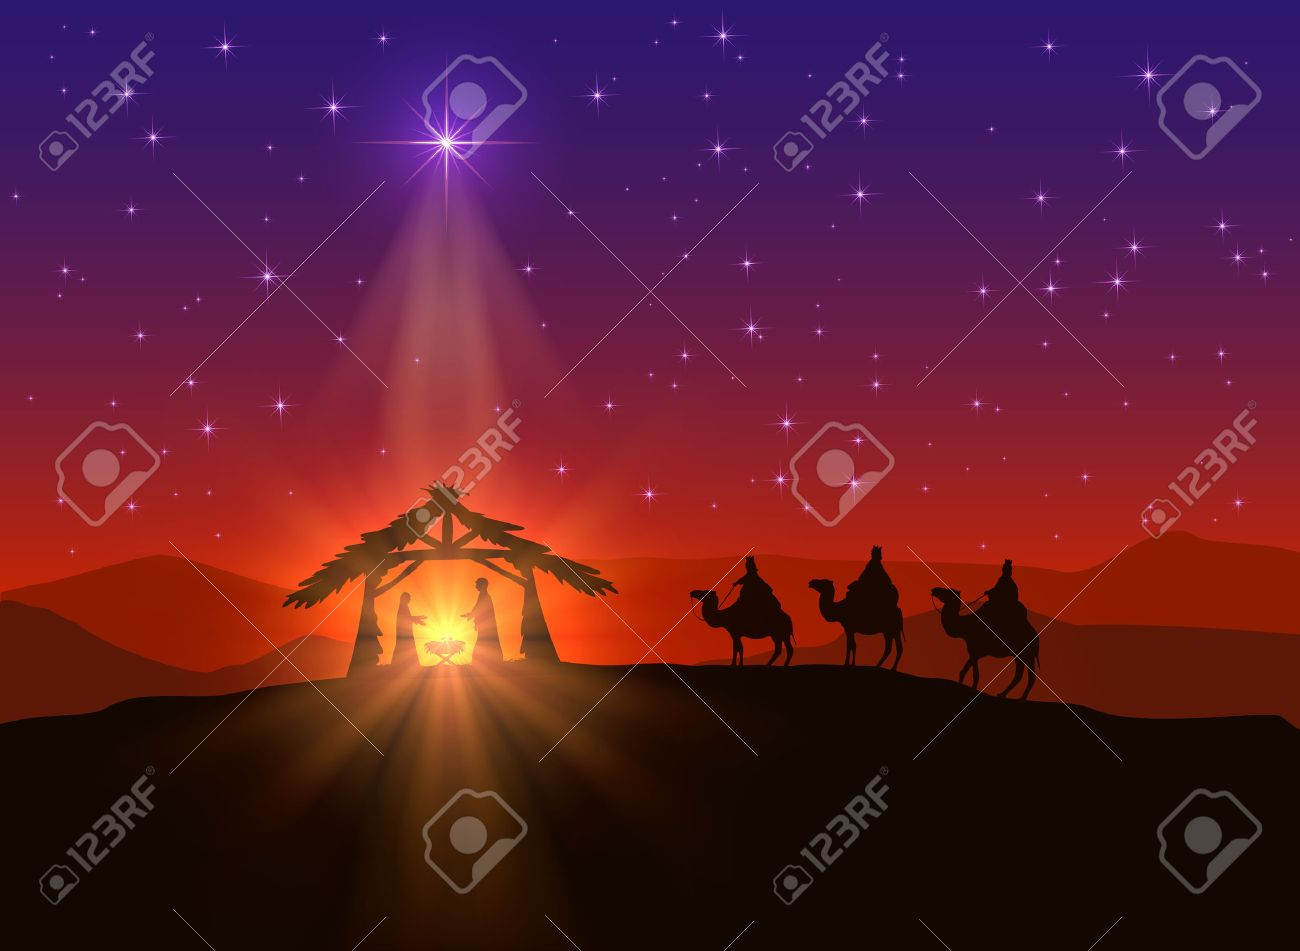 Christian background with Christmas star and birth of Jesus, illustration. - 47048596